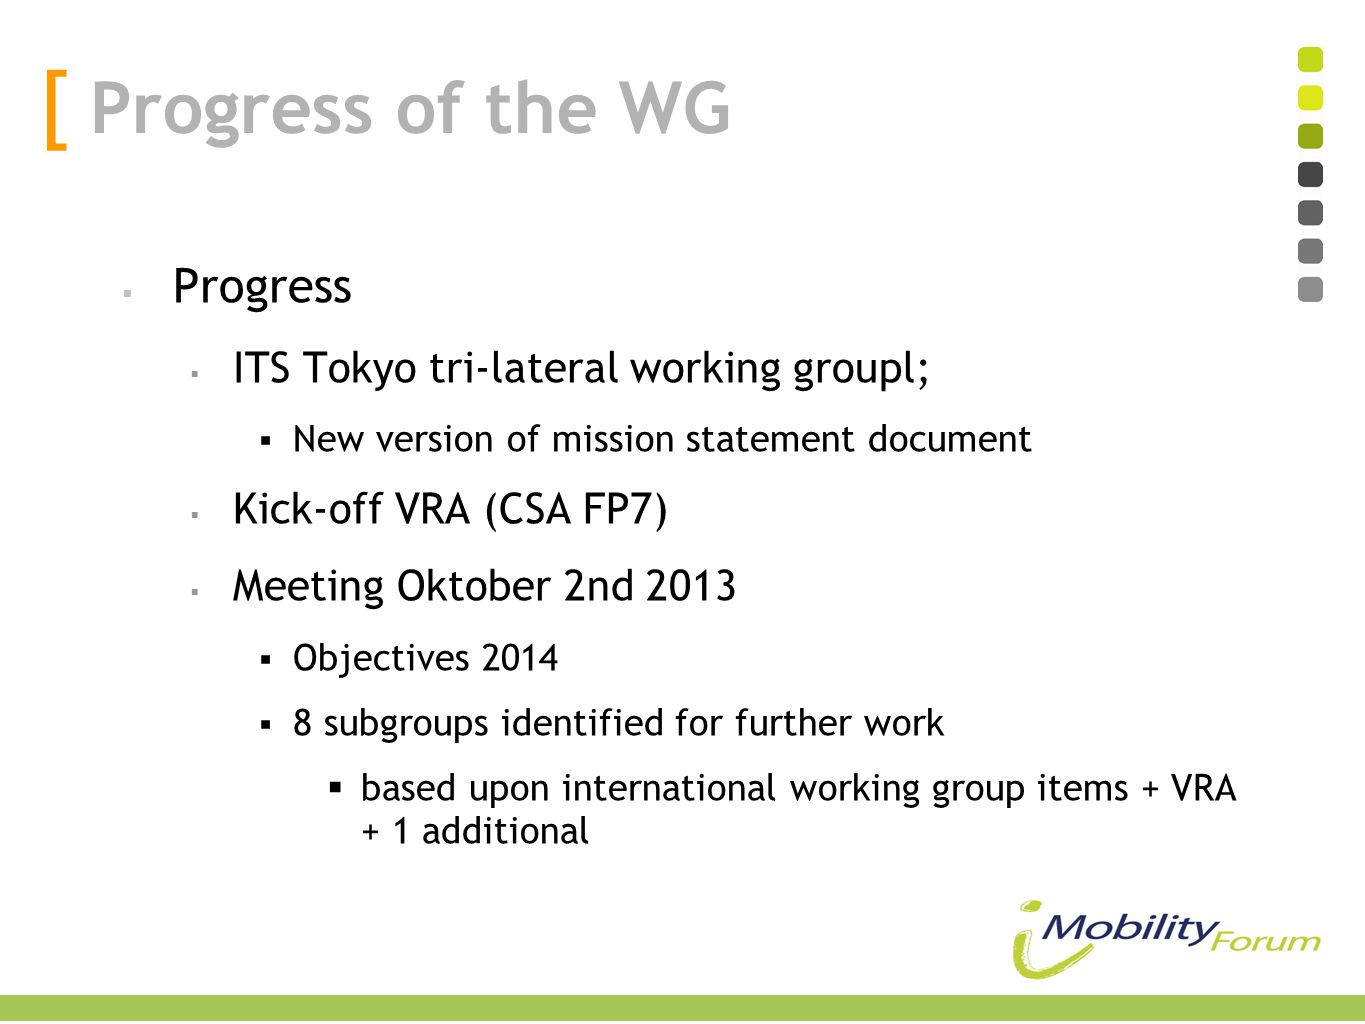  Progress  ITS Tokyo tri-lateral working groupl;  New version of mission statement document  Kick-off VRA (CSA FP7)  Meeting Oktober 2nd 2013  Objectives 2014  8 subgroups identified for further work  based upon international working group items + VRA + 1 additional [ Progress of the WG